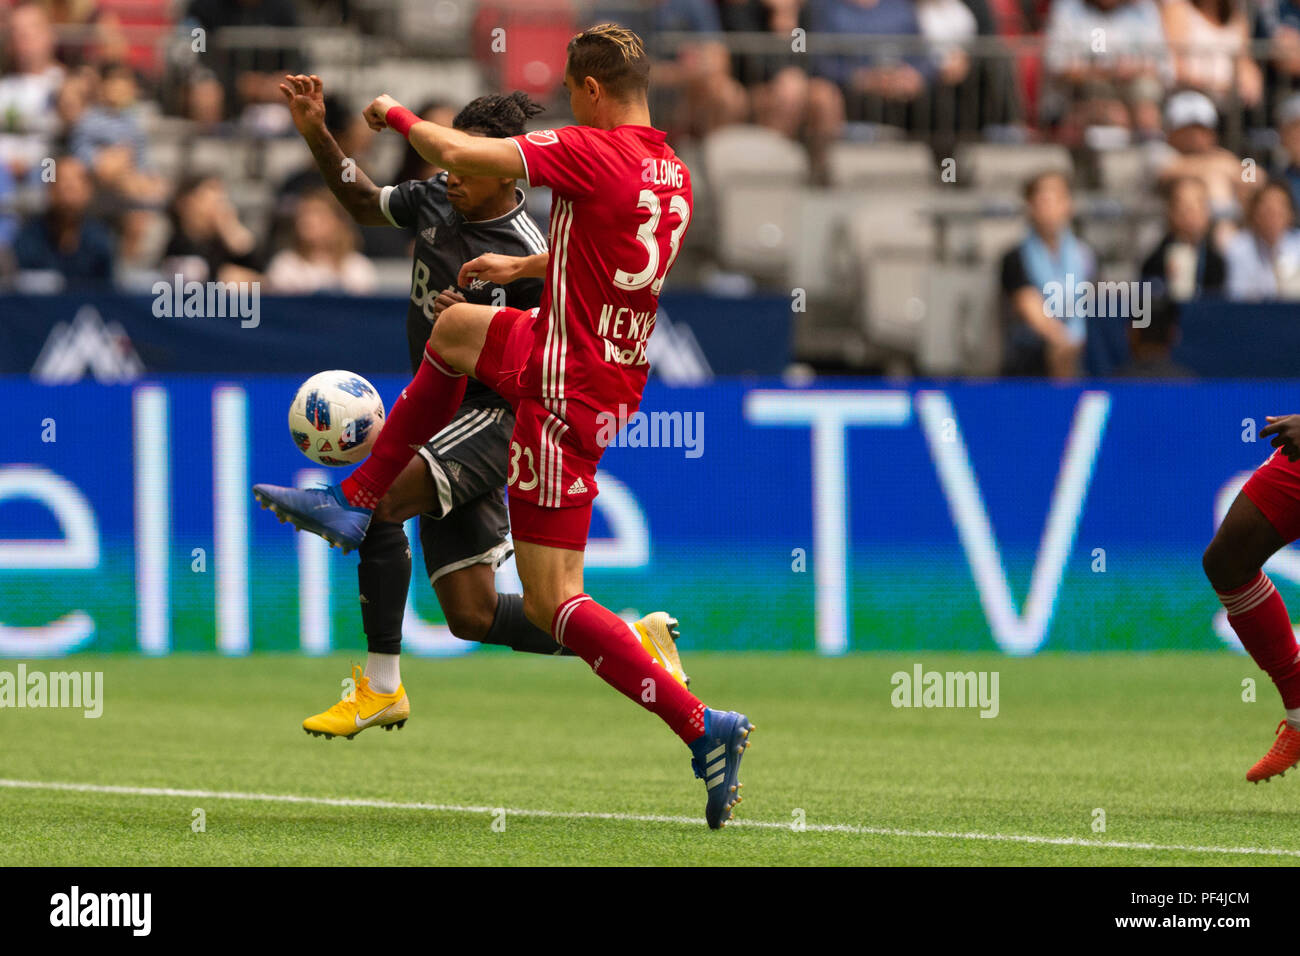 Vancouver, Canada. 18 August, 2018. Aaron Long (33) of New York Red Bulls and Yordi Reyna (29) of Vancouver Whitecaps, battle for the ball. Vancouver Whitecaps vs New York Red Bulls, BC Place Stadium. © Gerry Rousseau/Alamy Live News - Stock Image